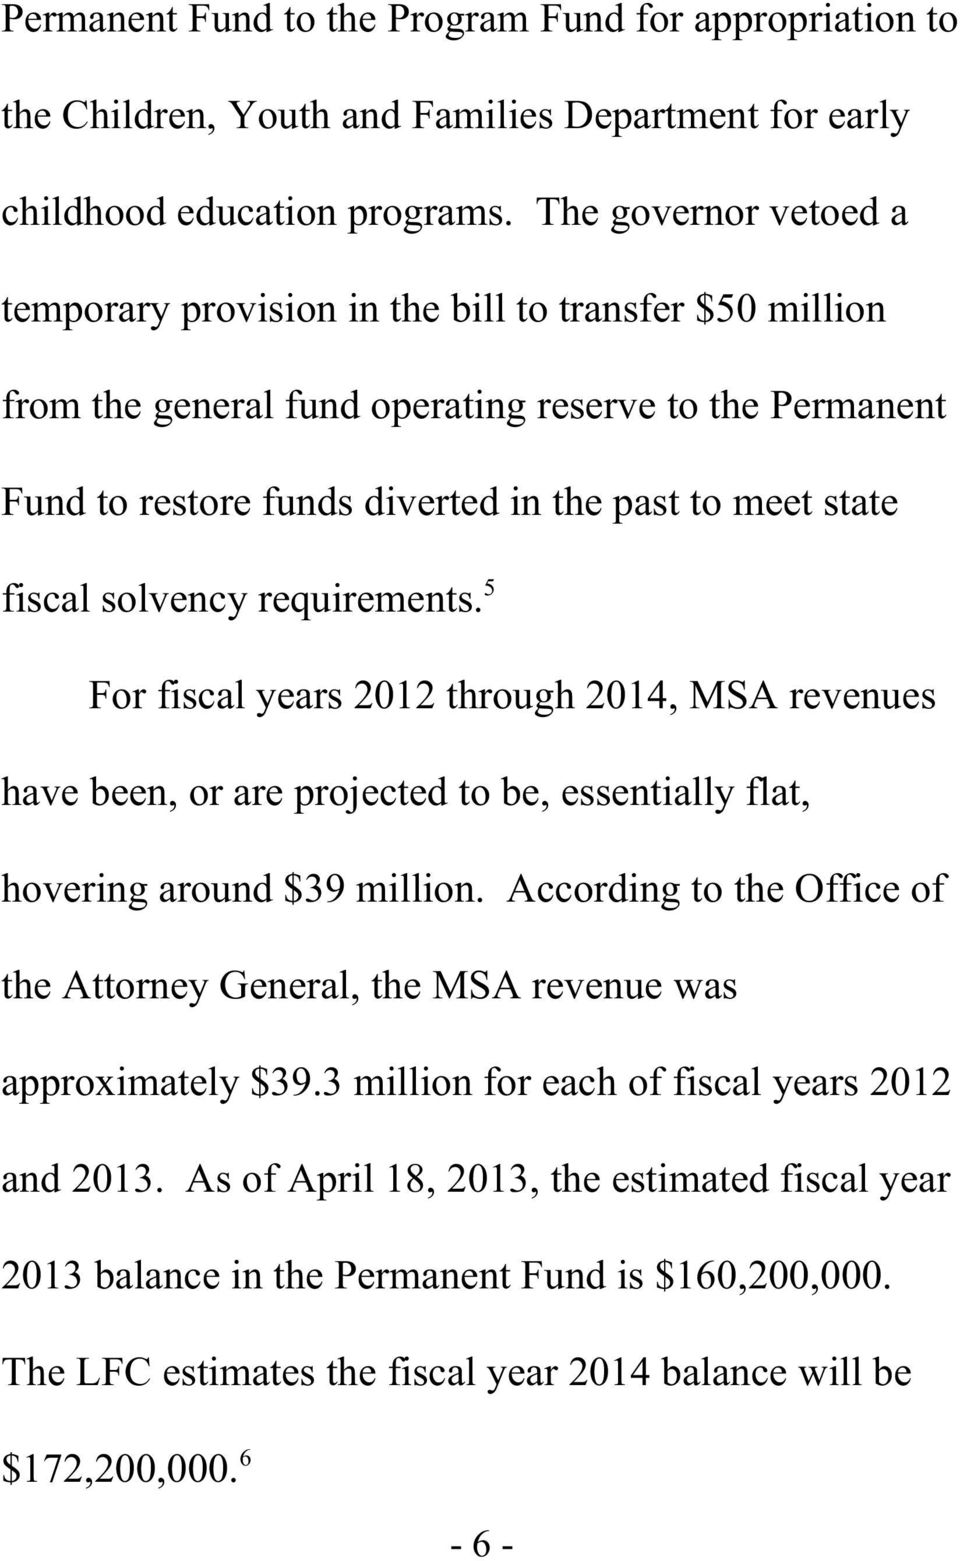 solvency requirements. 5 For fiscal years 2012 through 2014, MSA revenues have been, or are projected to be, essentially flat, hovering around $39 million.